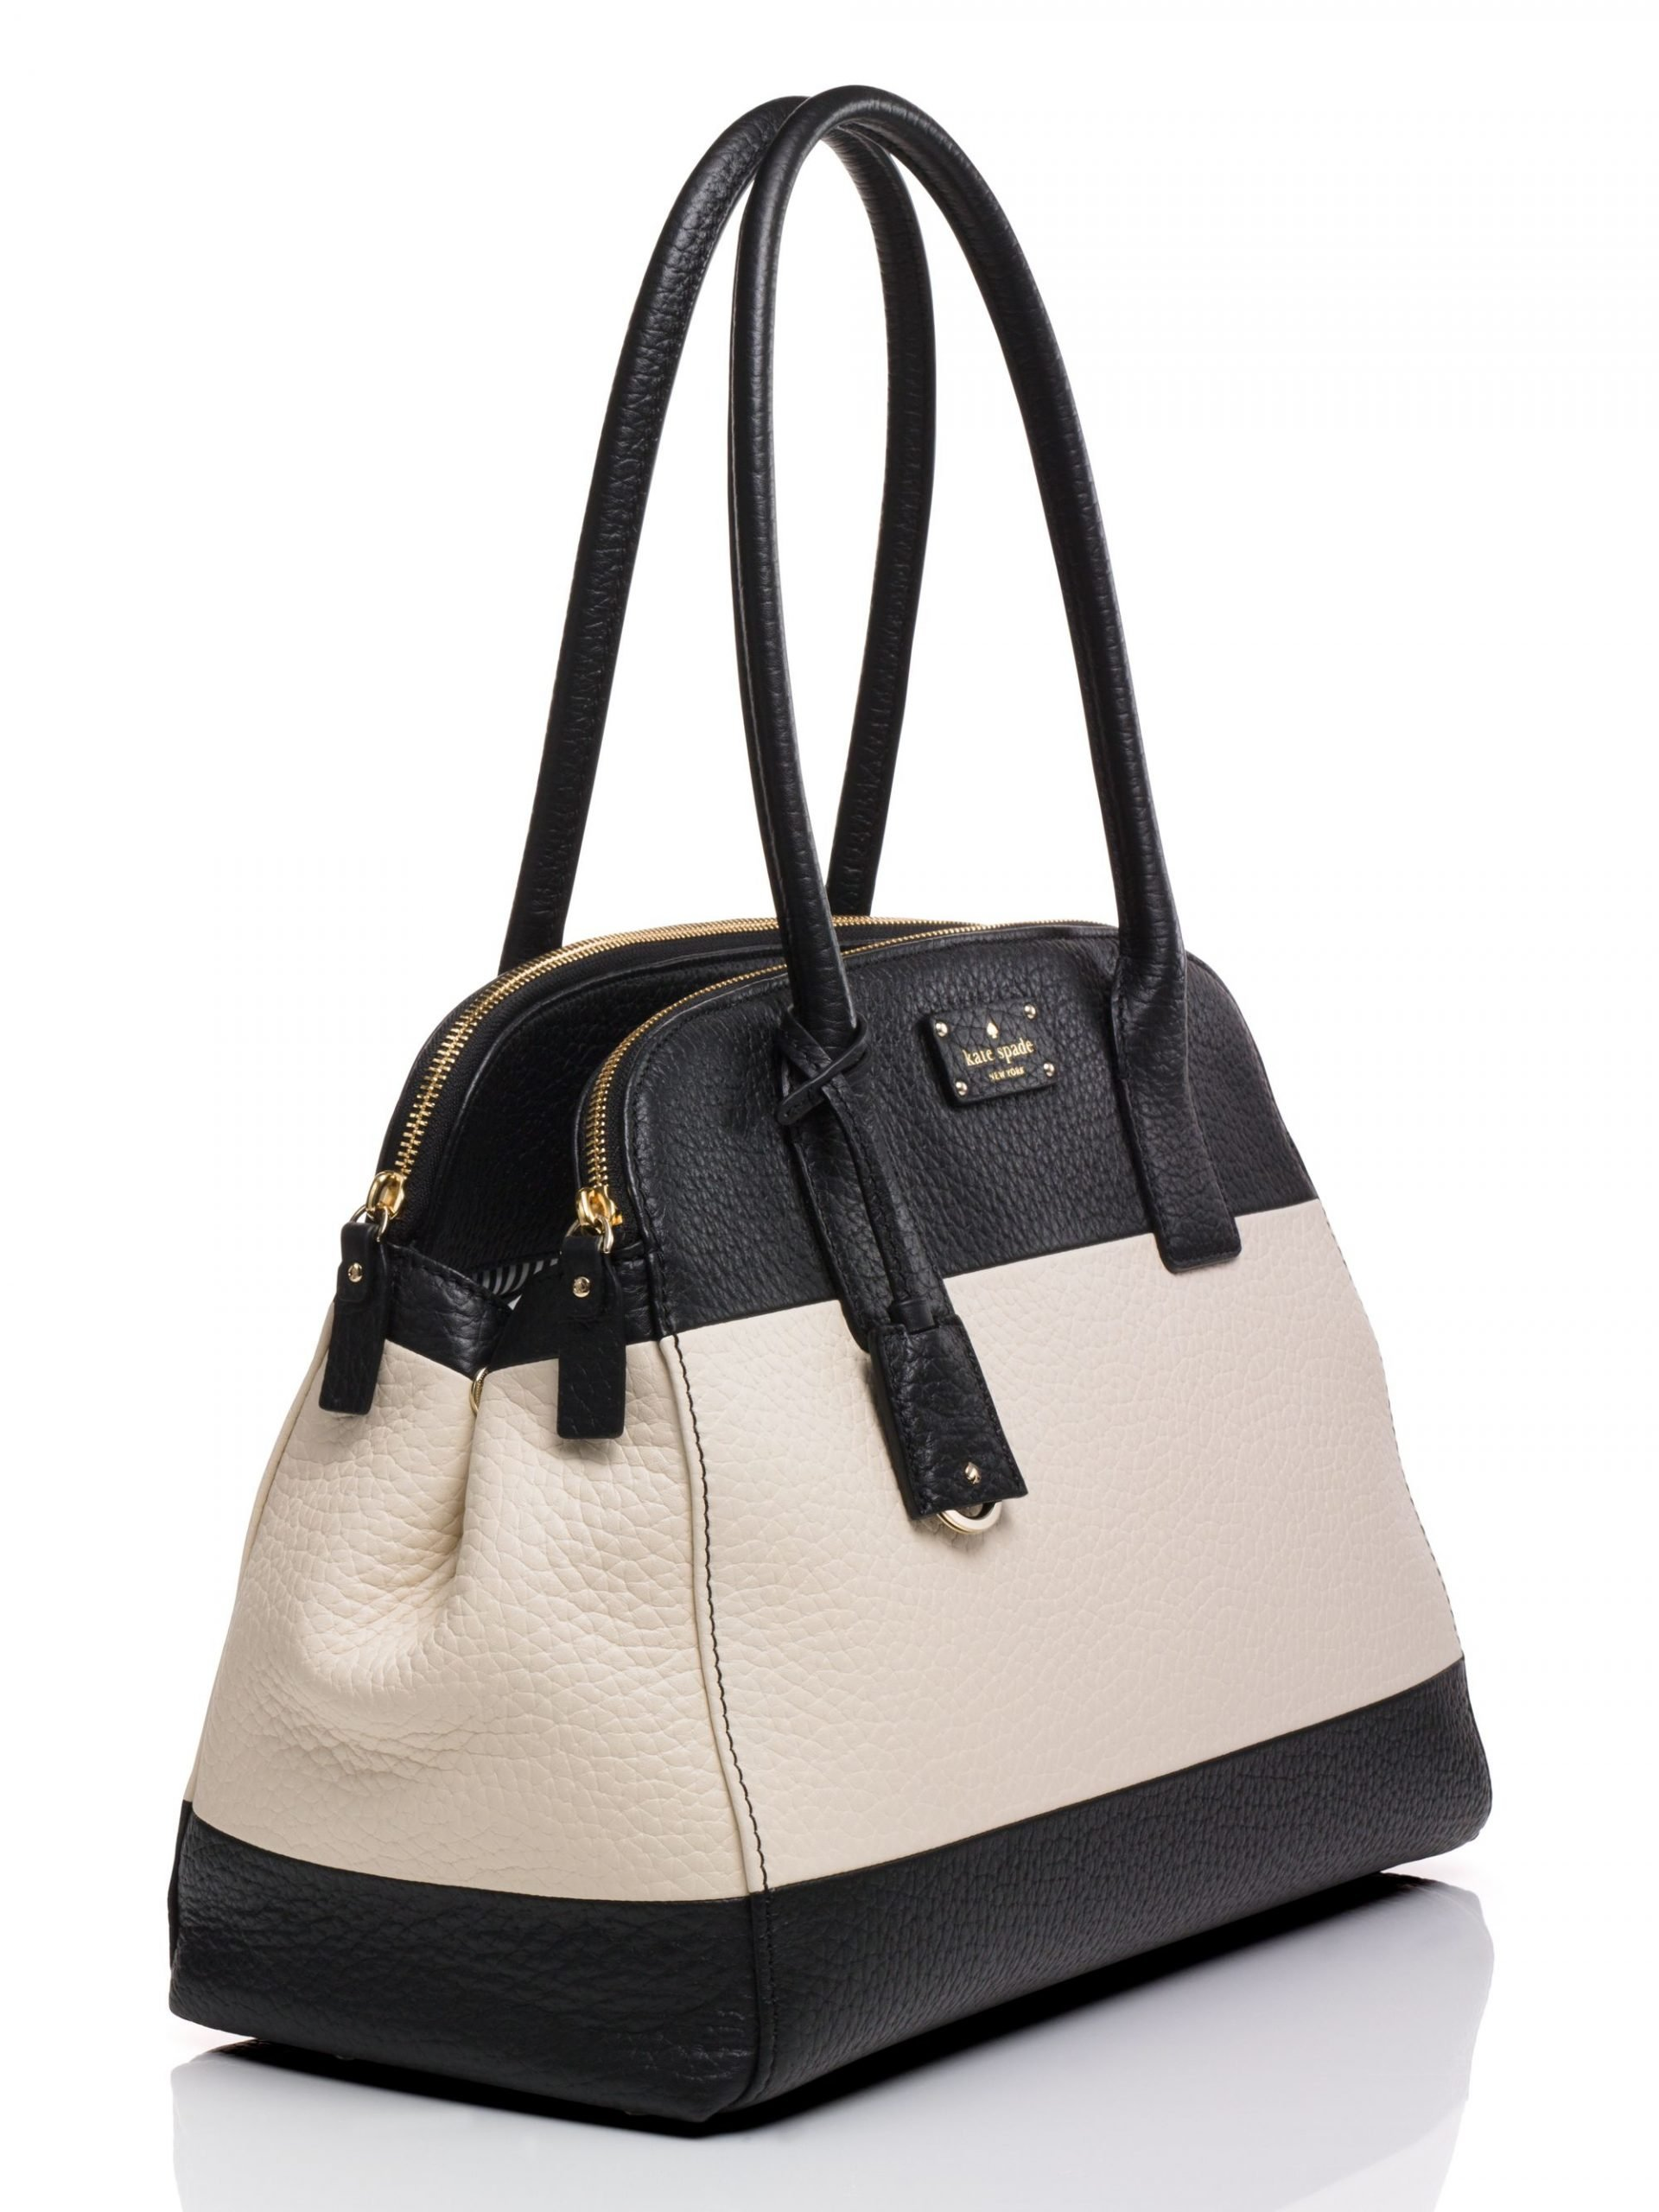 lyst kate spade new york kendall court hughes in black scaled